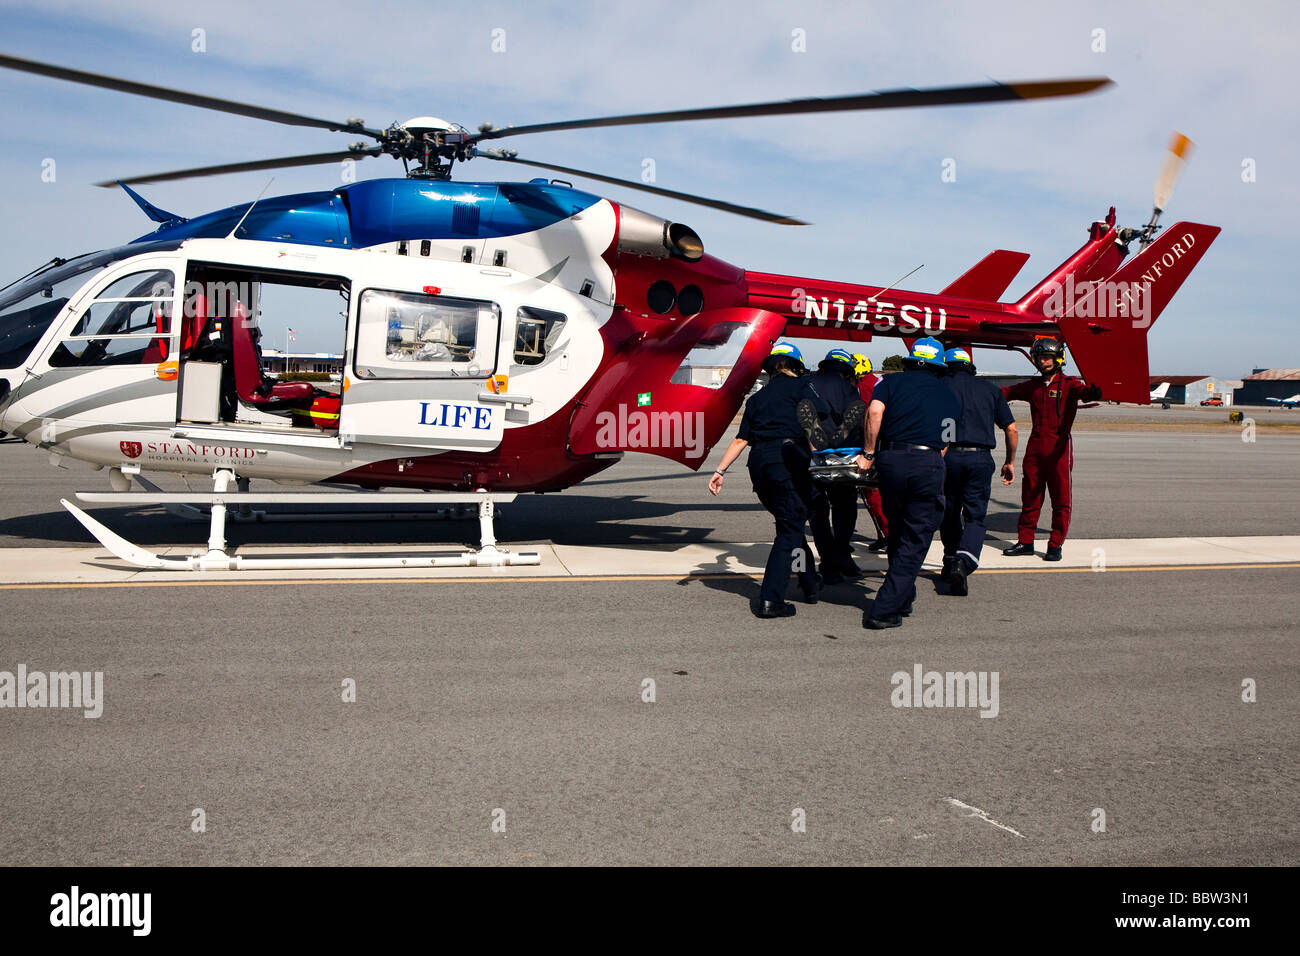 Air Ambulance Helicopter Emergency Responder Special